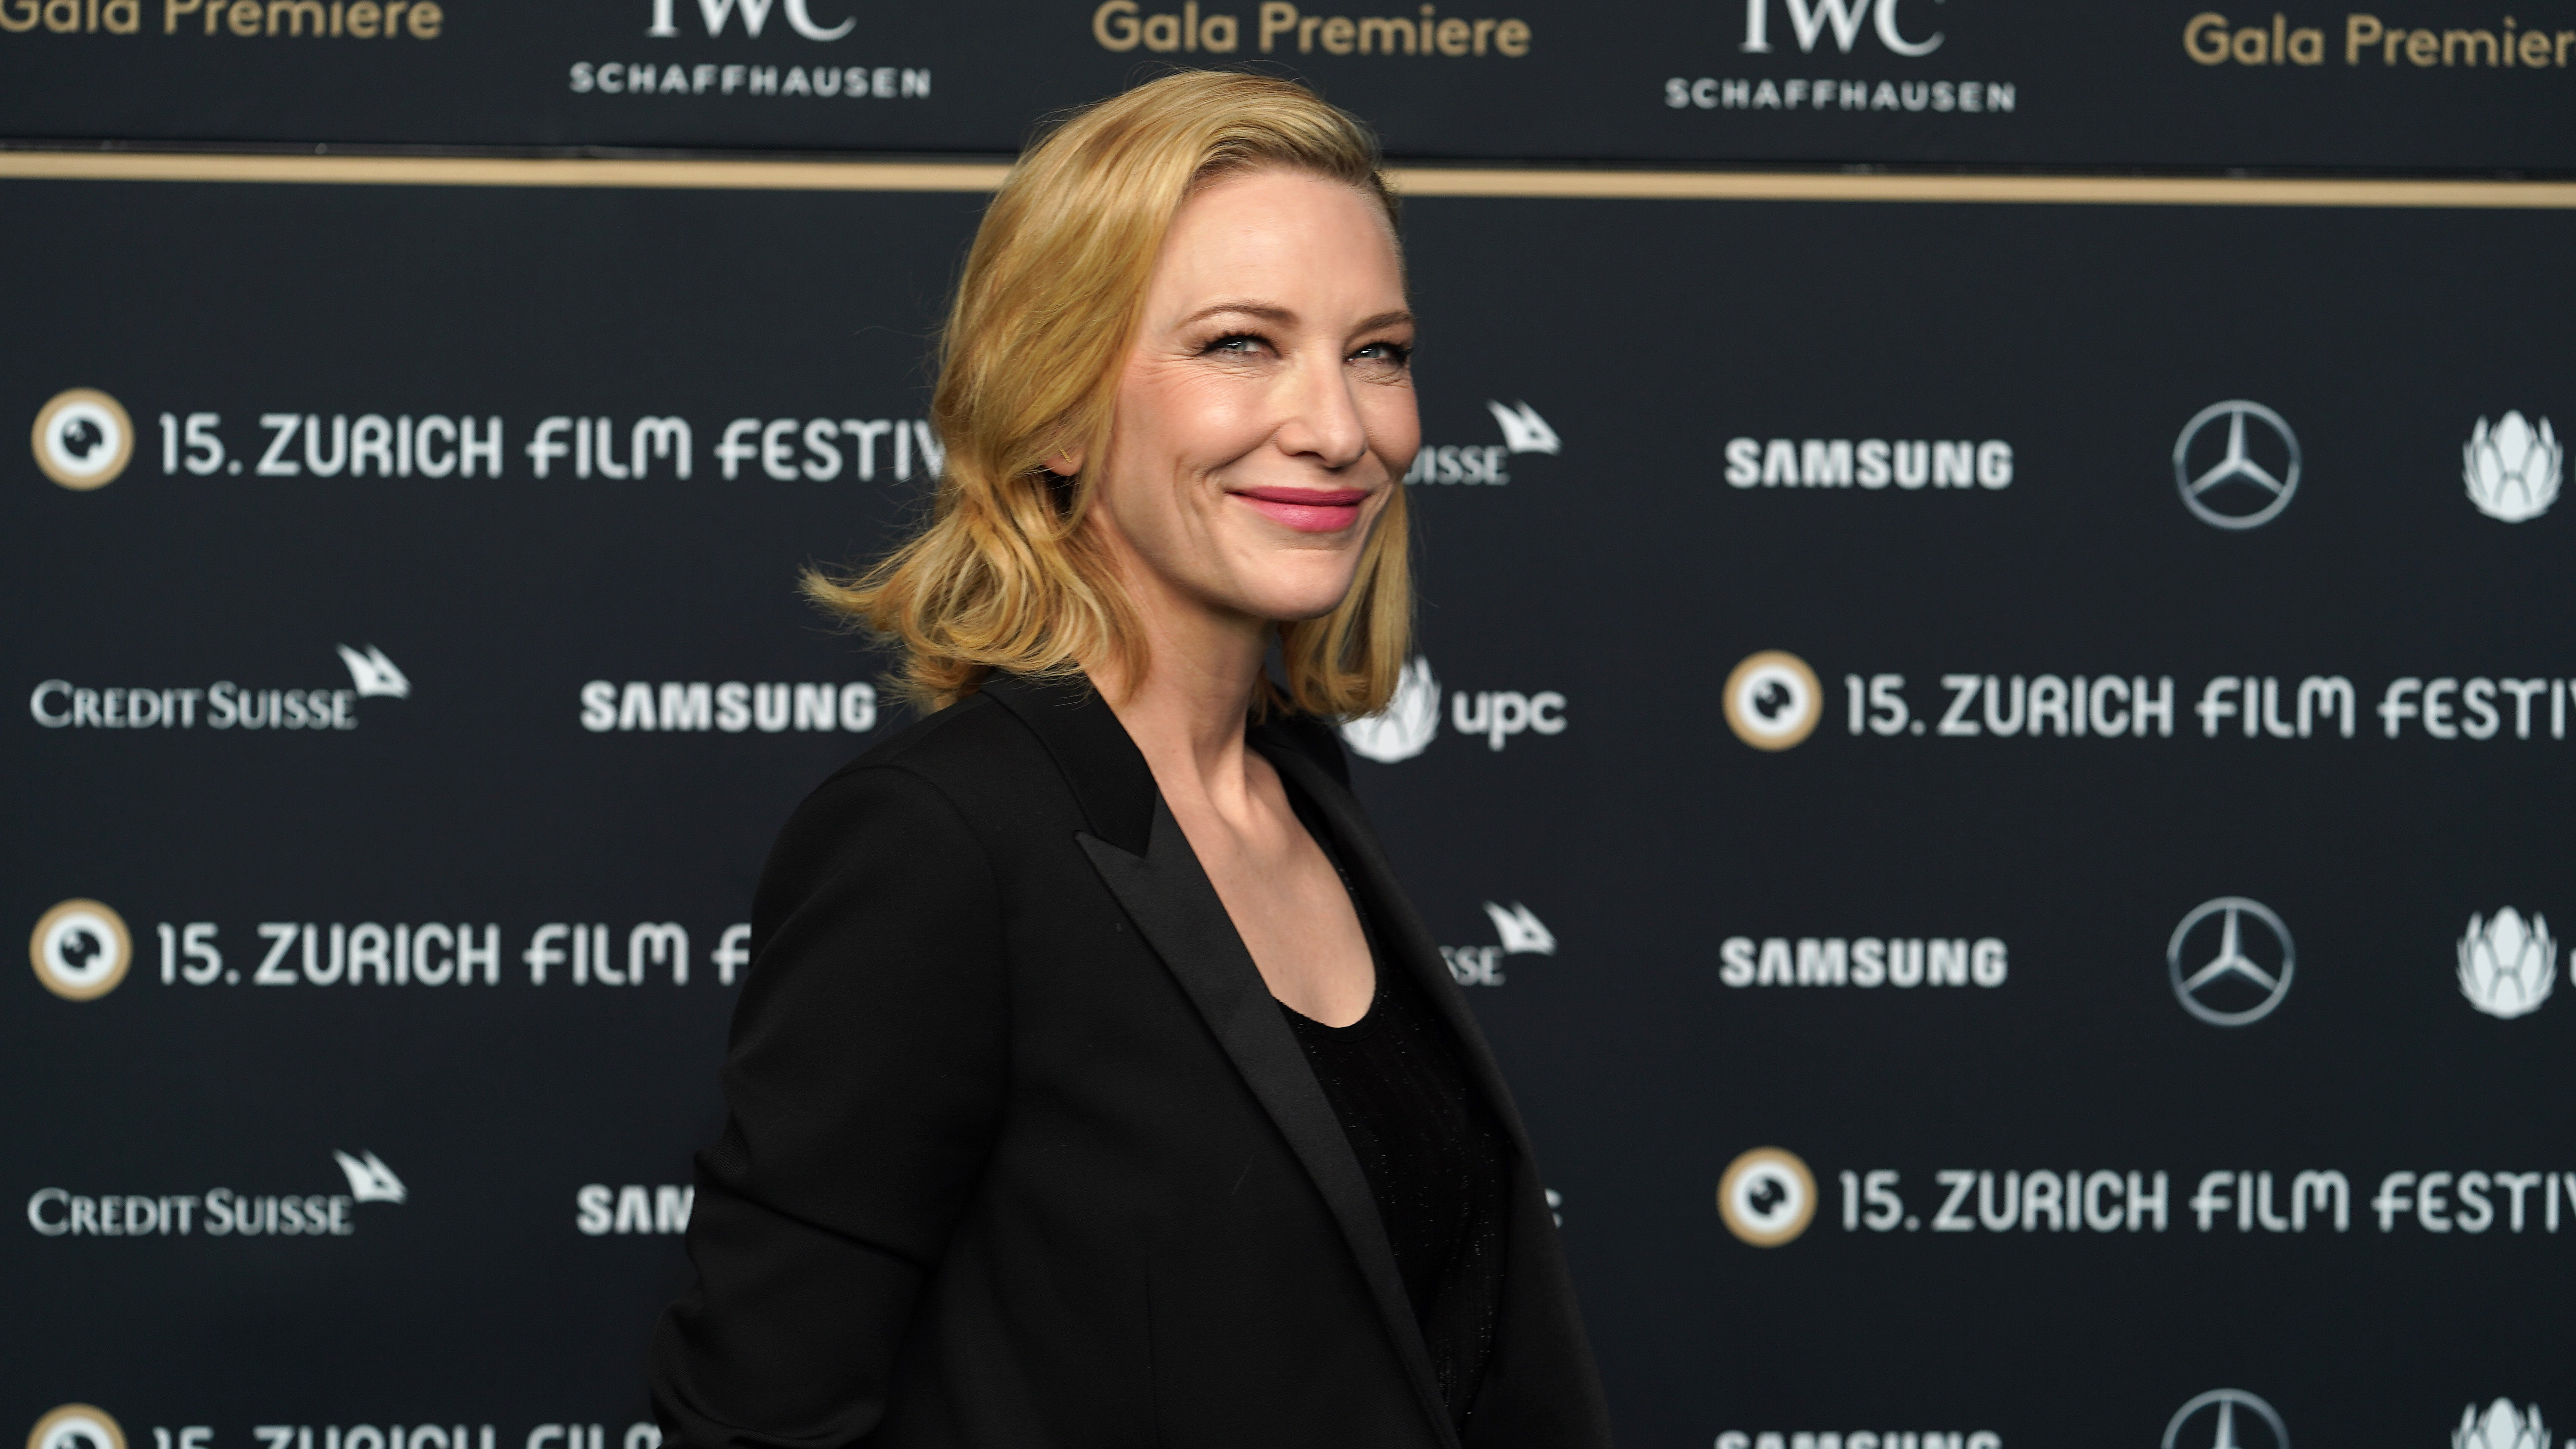 A Borderlands Movie Starring Cate Blanchett Might Be Just What We Need Right Now